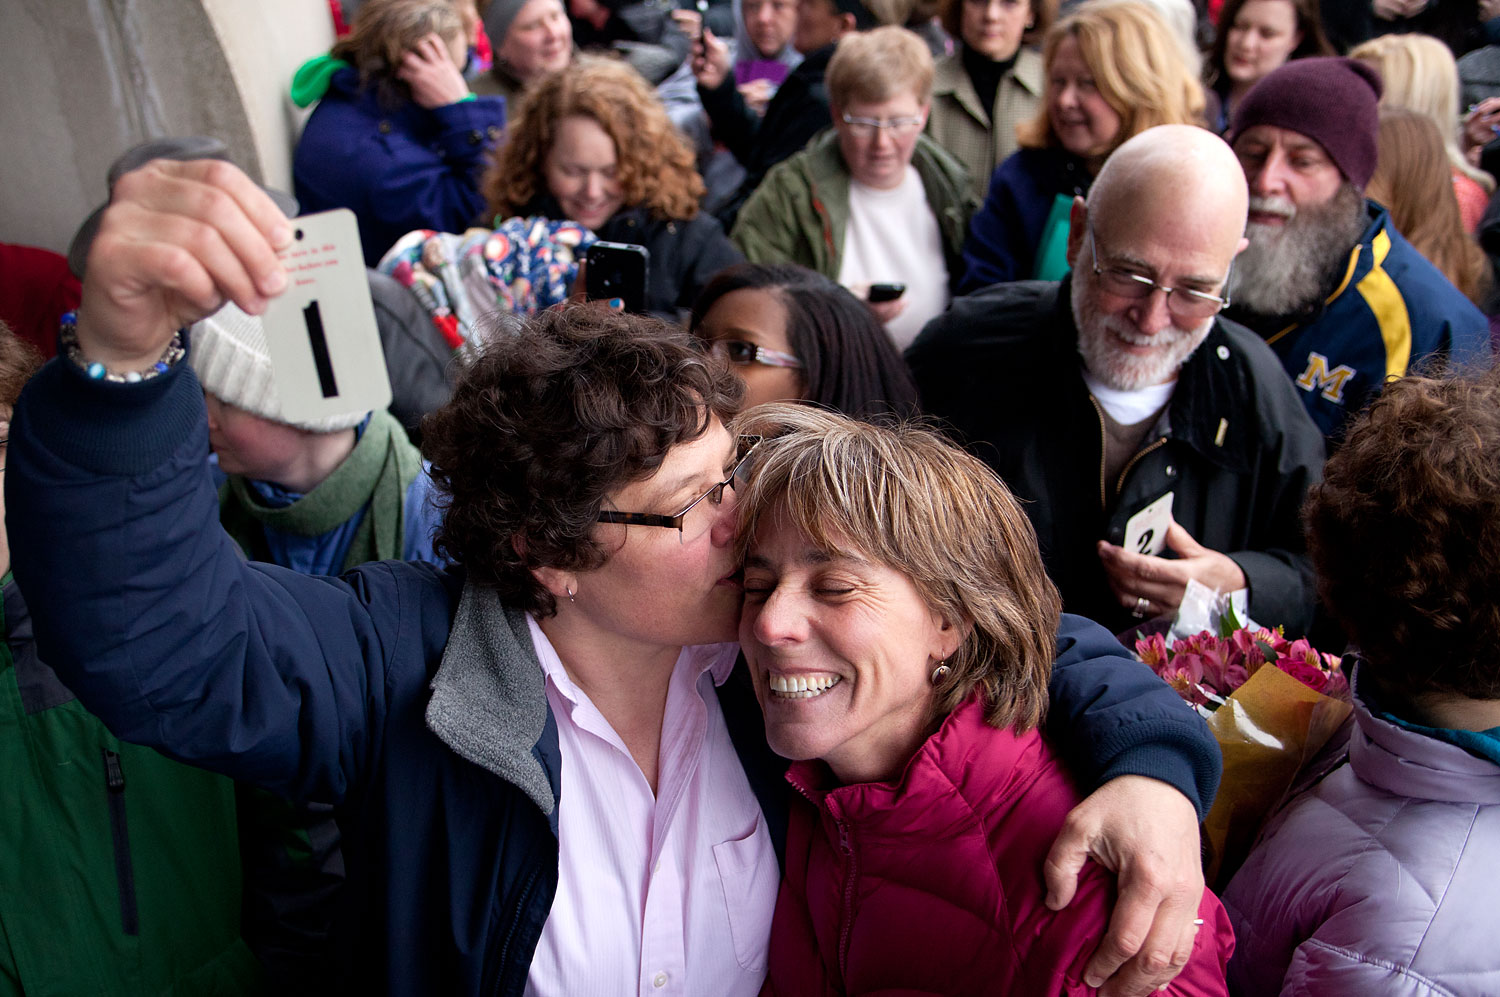 Elizabeth Patten, left, holds up the first marriage ticket to marry her partner Johnnie Terry in front of the Washtenaw County Clerks office in Ann Arbor, Mich., March 22, 2014, prior to the postponement of same-sex marriages by a federal appeals court.